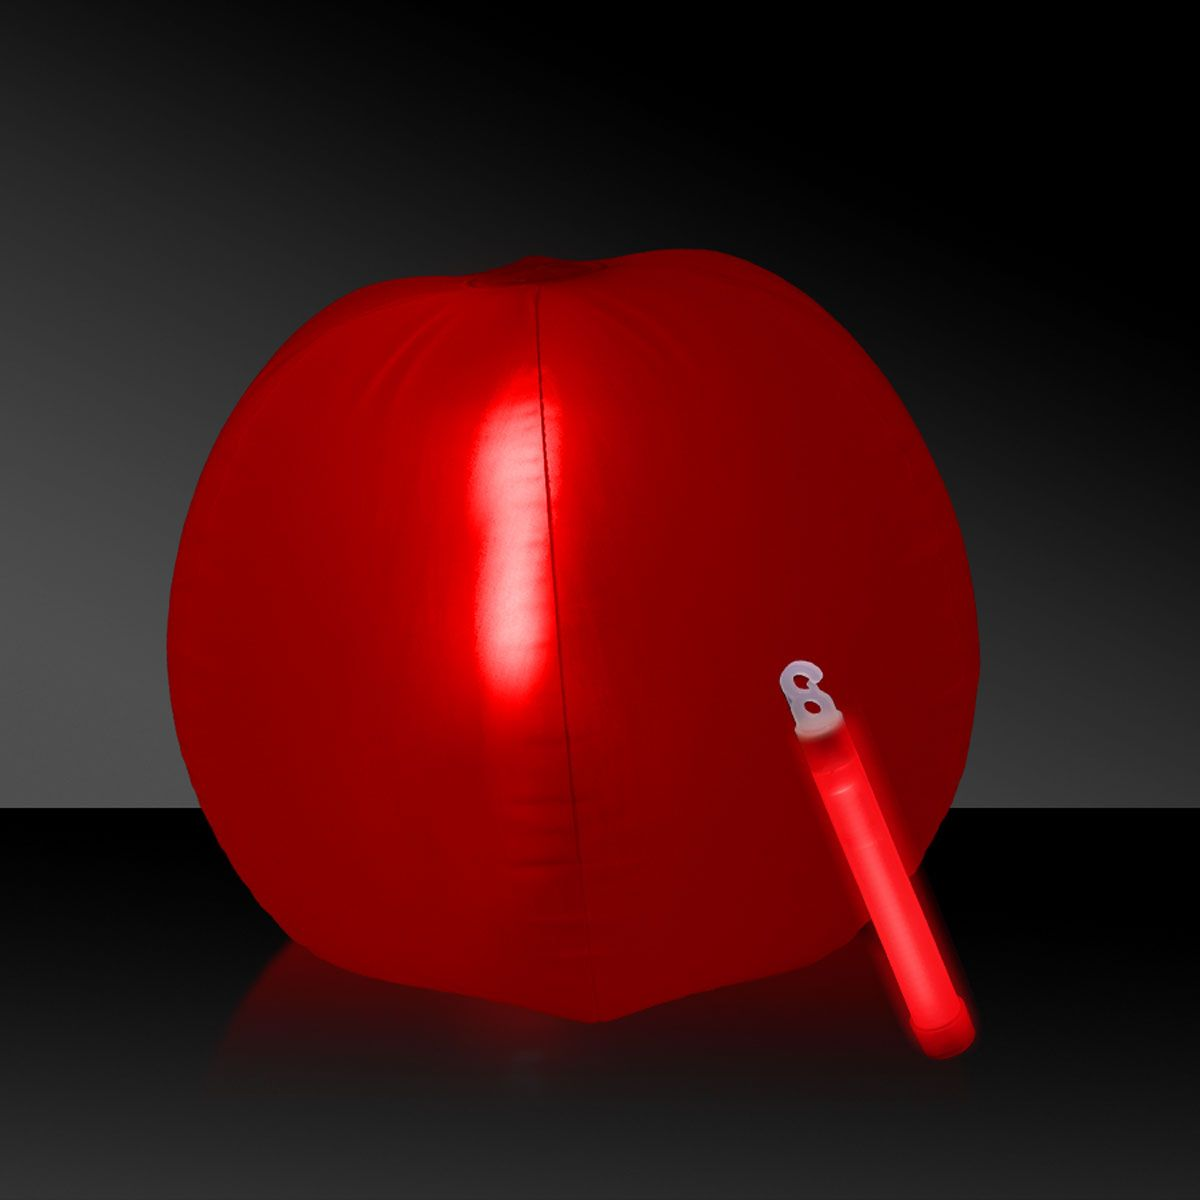 "Glow in the Dark Beach Ball - 12"""" Red, 1 Each"" GNO102EA"